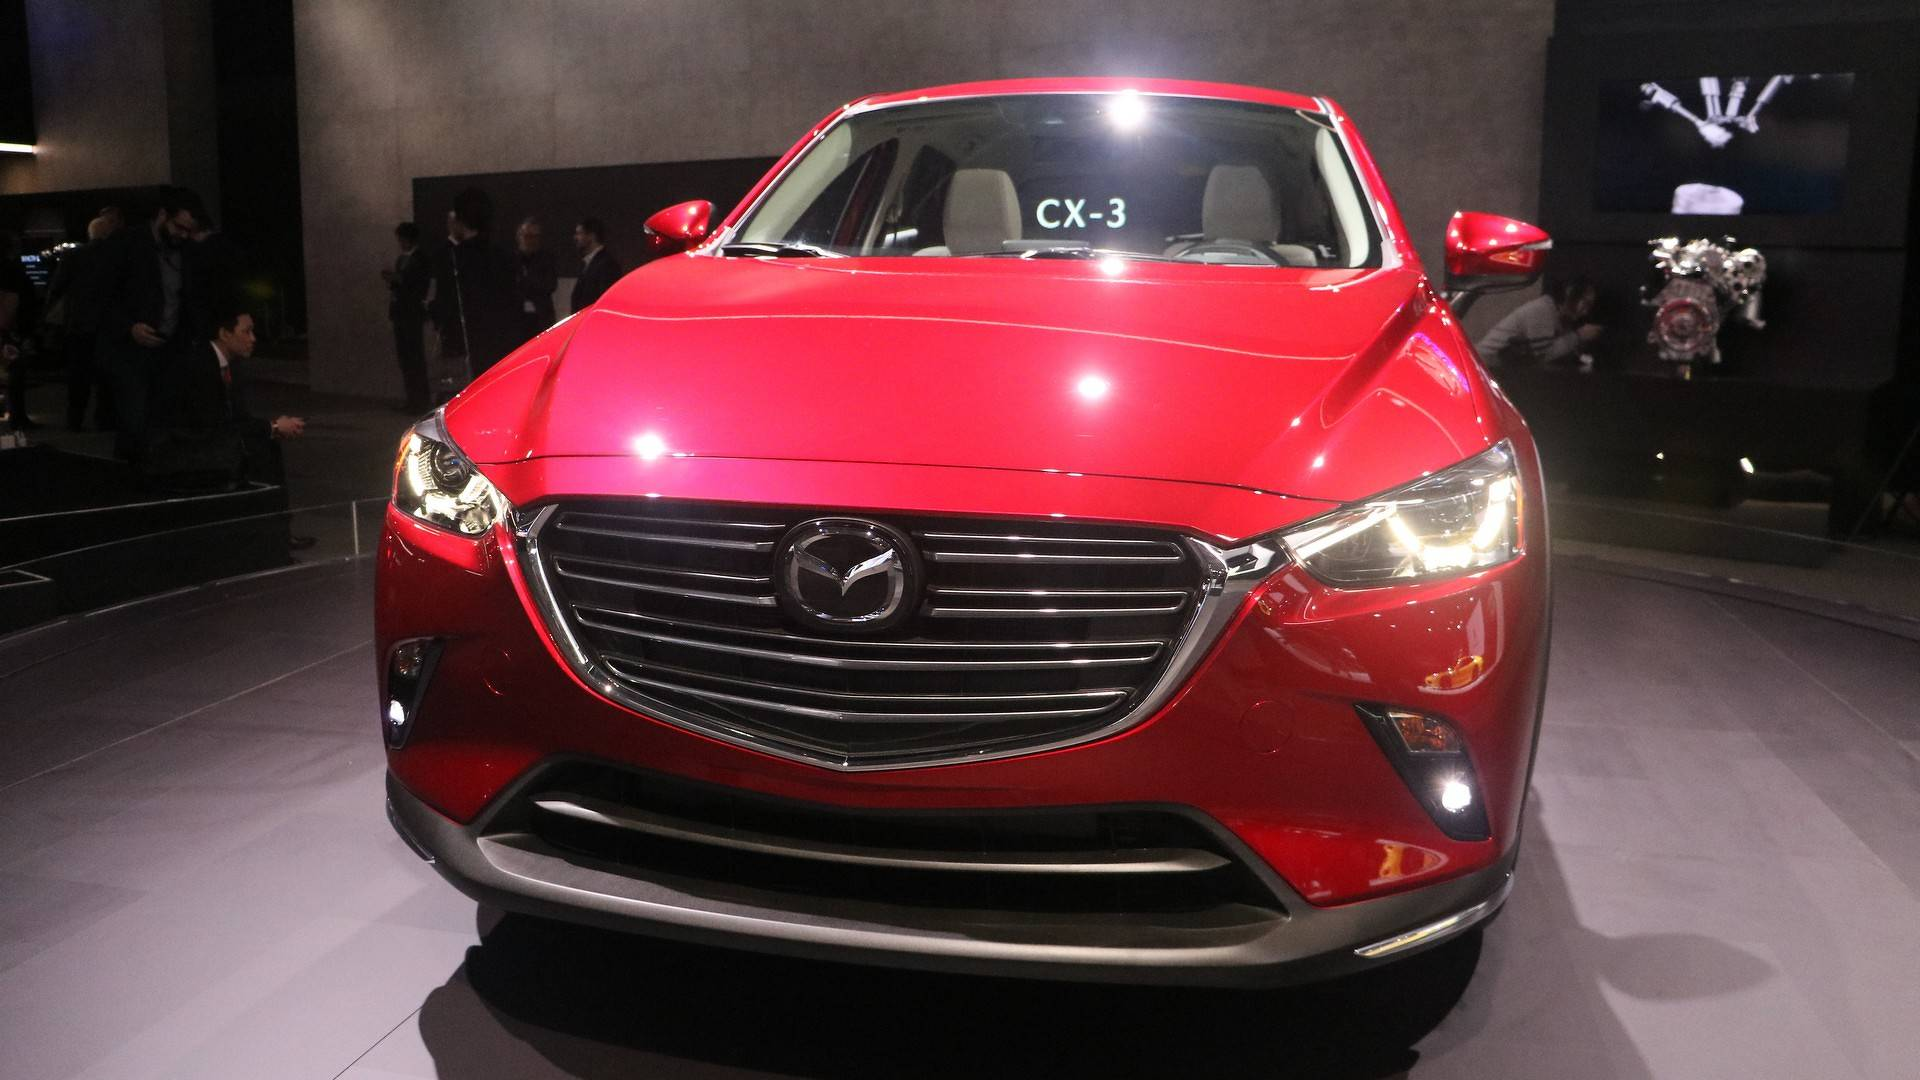 2019 Mazda CX-9: Expectations, Changes >> 2019 Mazda Cx 9 Expectations Changes 2020 Upcoming Car